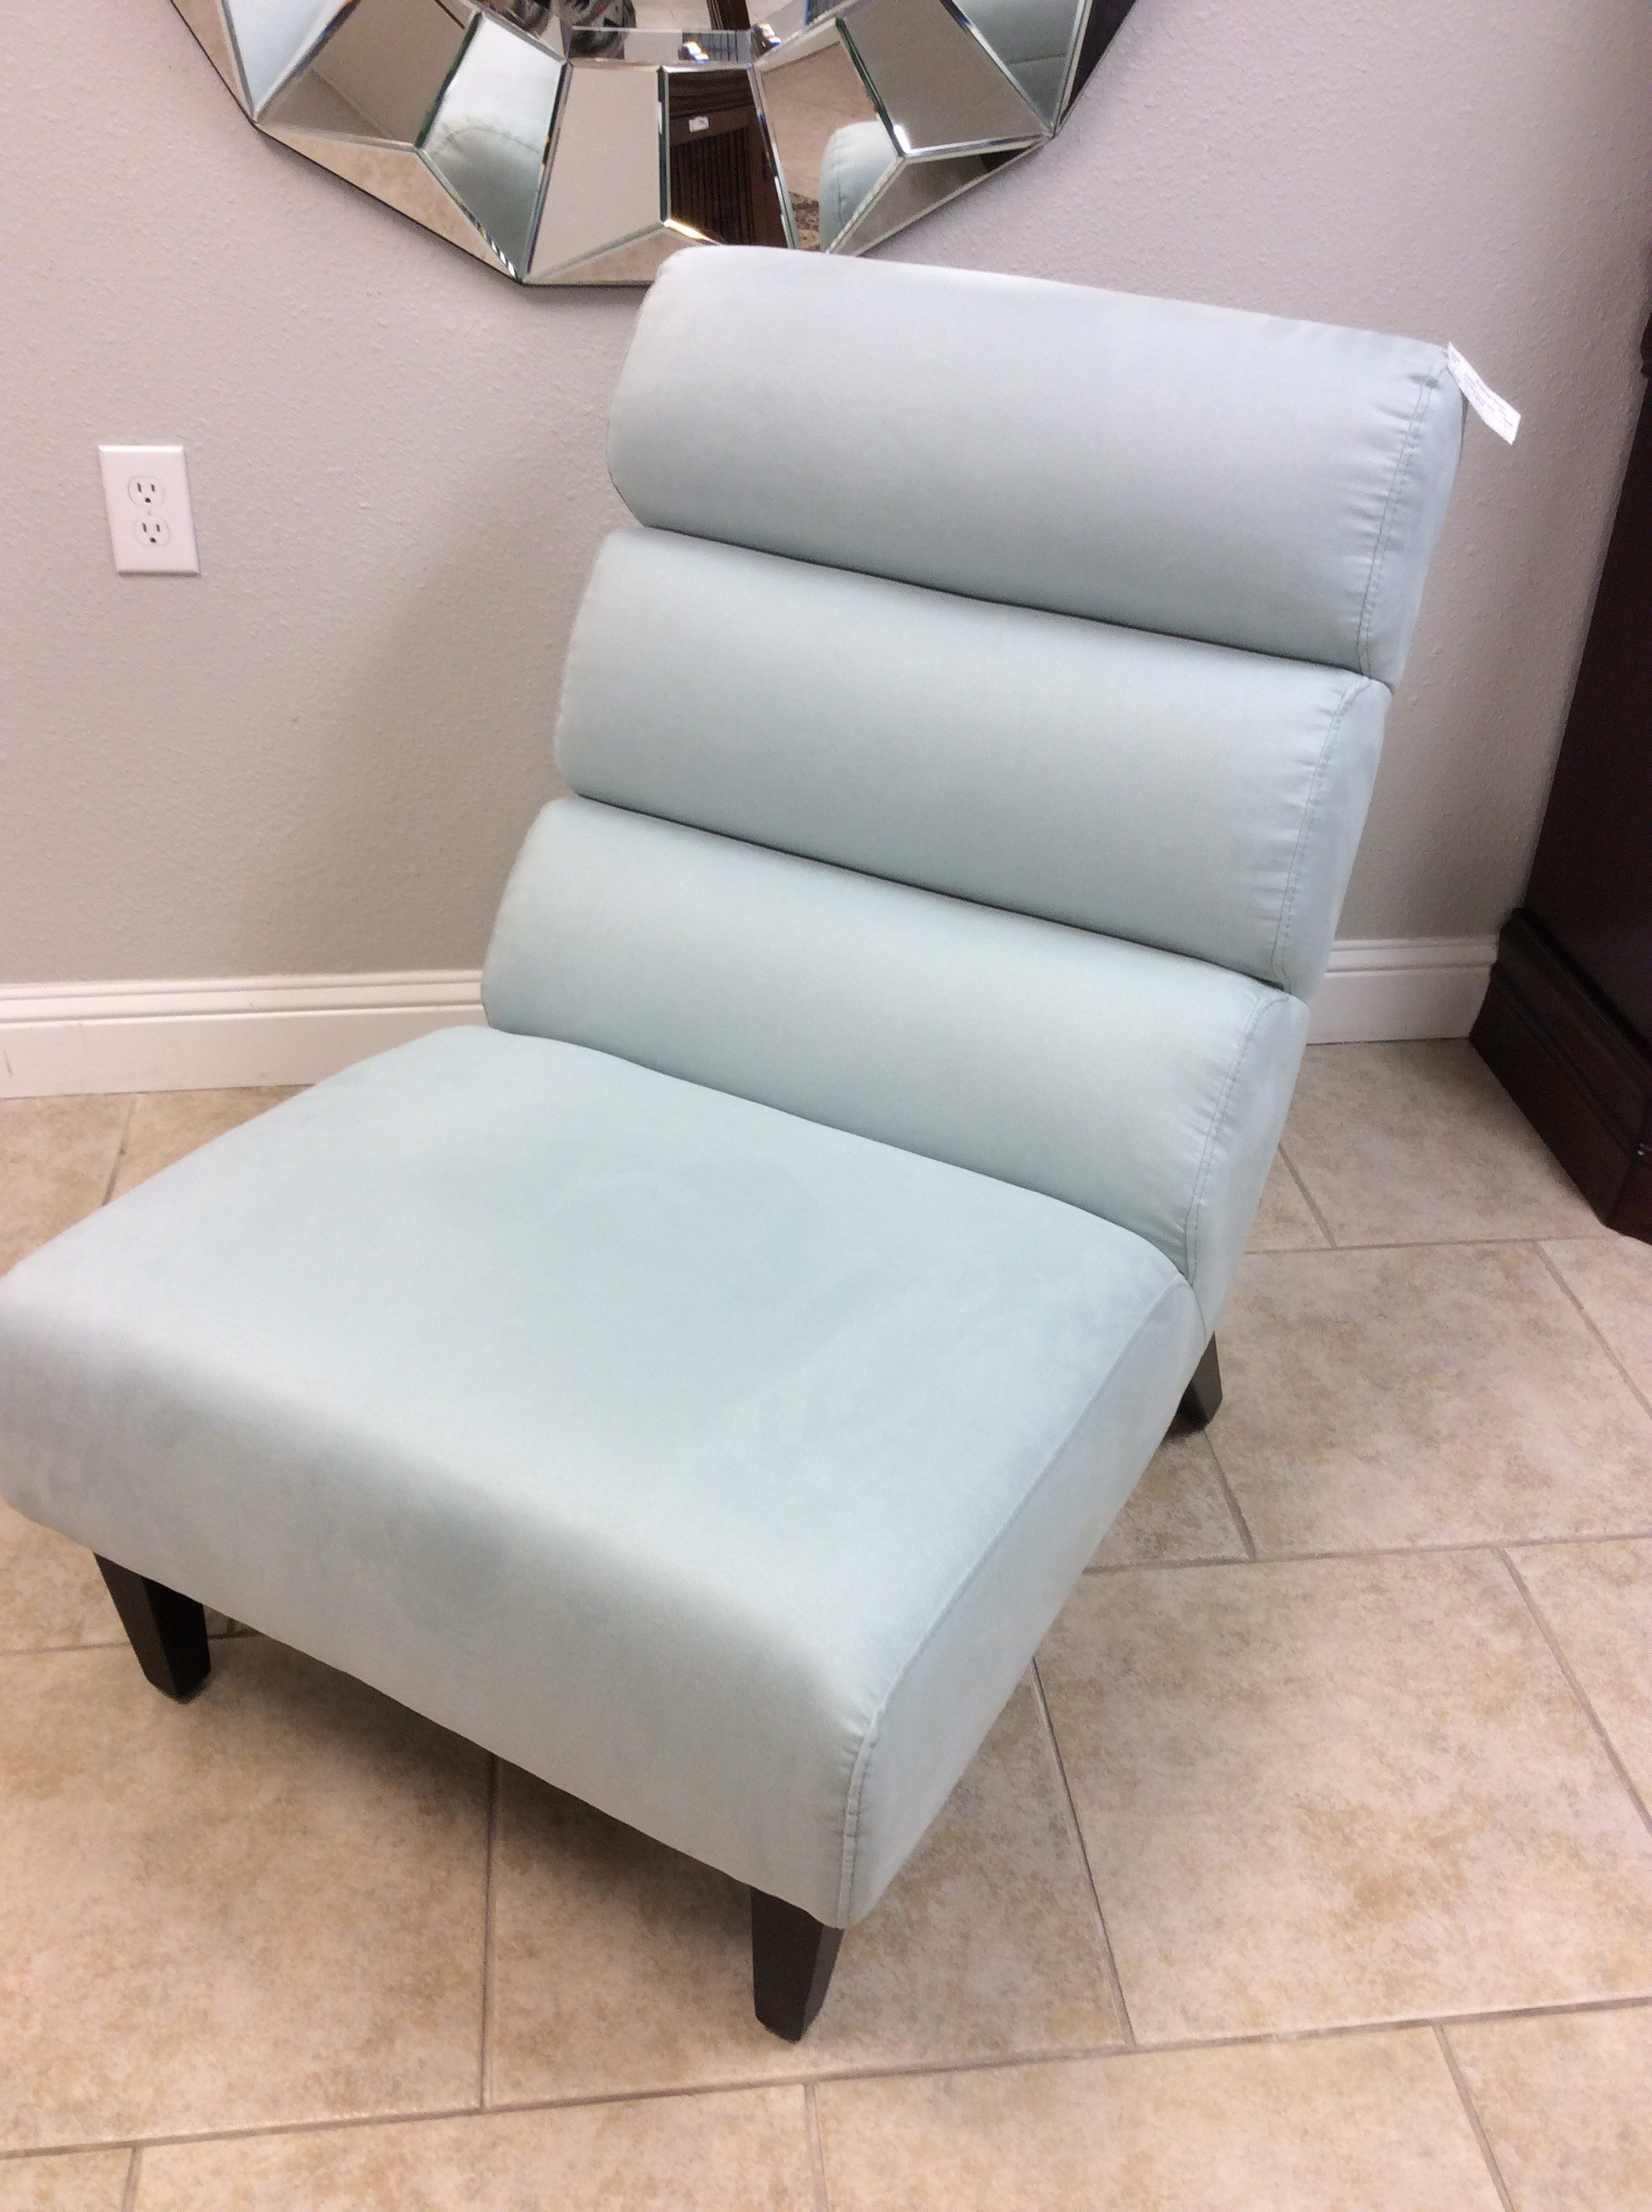 Love the baby blue color of this accent chair!<br /> Will blend in beautifully with almost any decor. The fabric is a very pale cool blue microfiber suede. It has a rolled back and sits on dark wood legs. This is a very comfortable chair.....